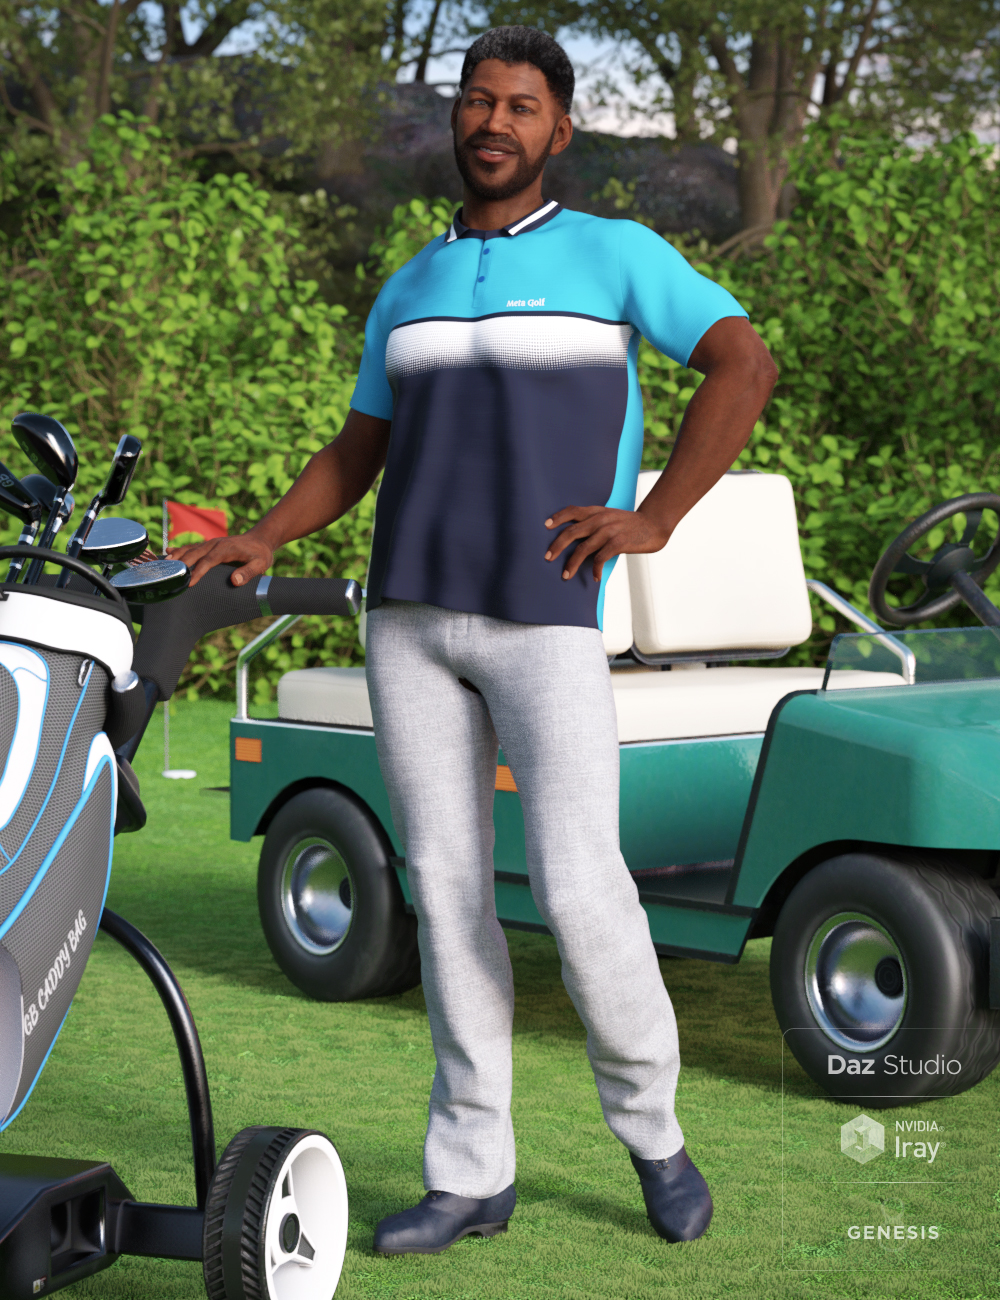 Casual Golf Outfit for Genesis 8 Male(s) by: Lyrra MadrilMoonscape GraphicsSade, 3D Models by Daz 3D